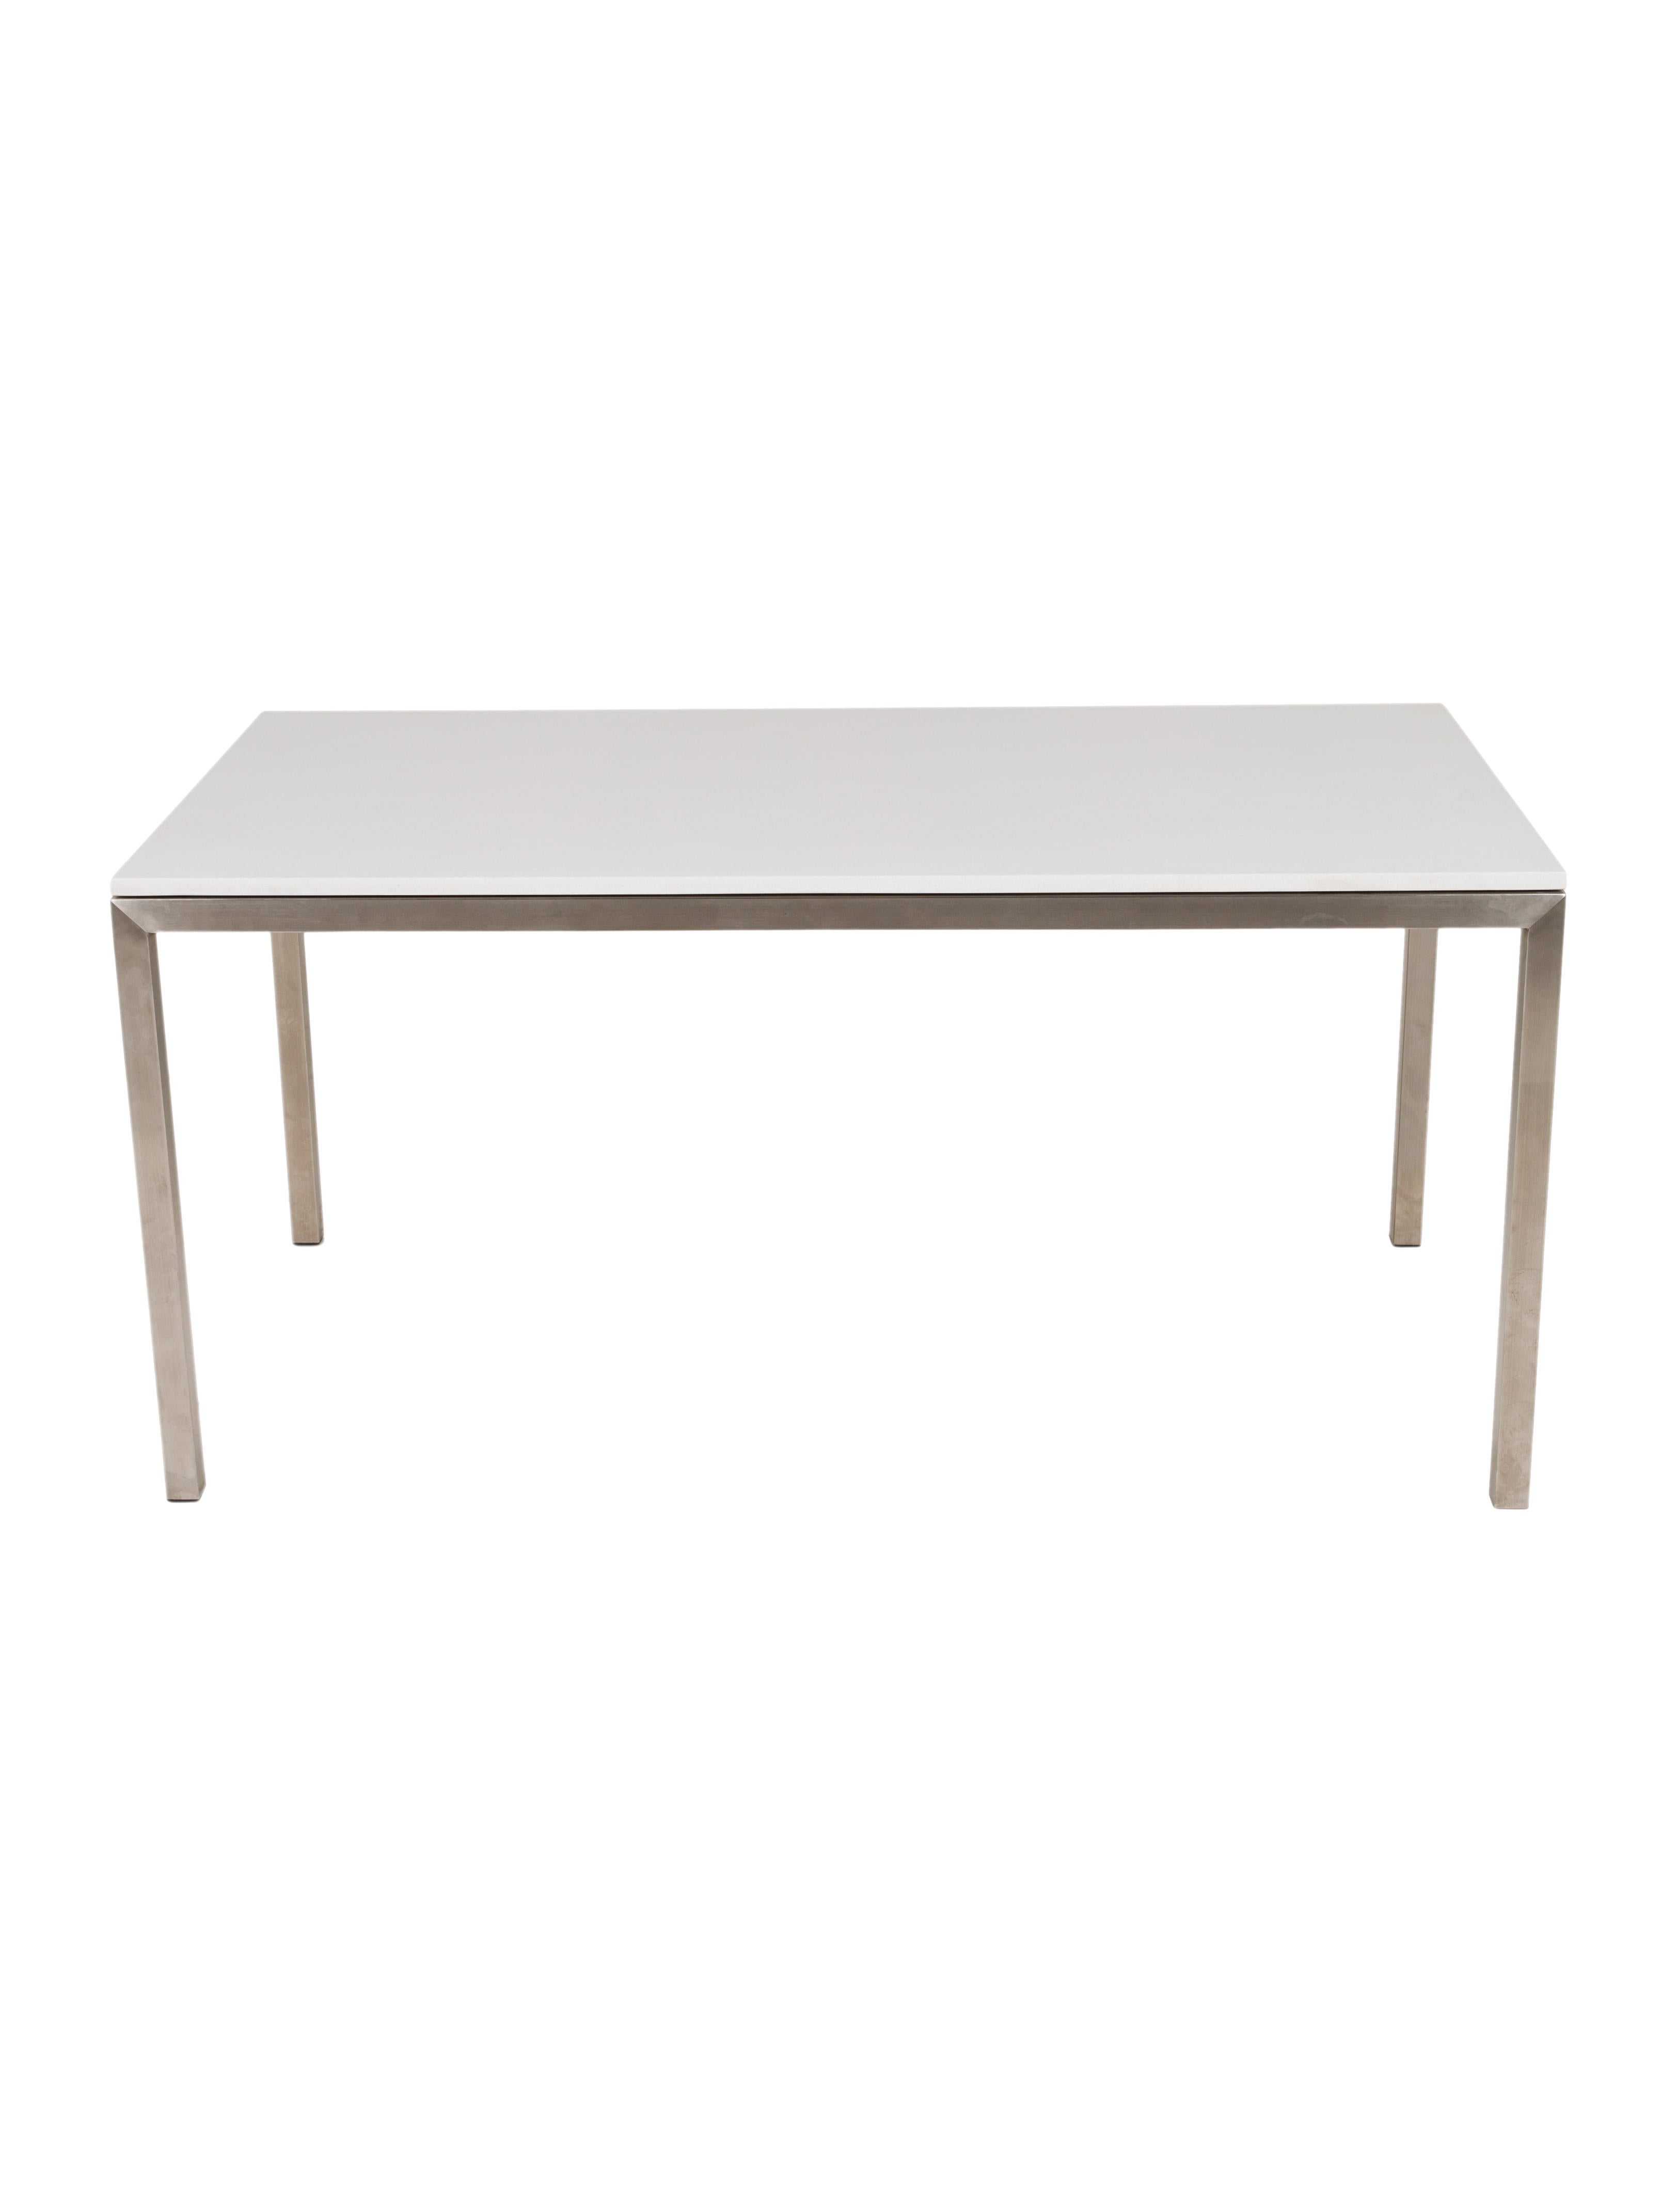 Granite top dining table furniture table20301 the for Granite top dining table